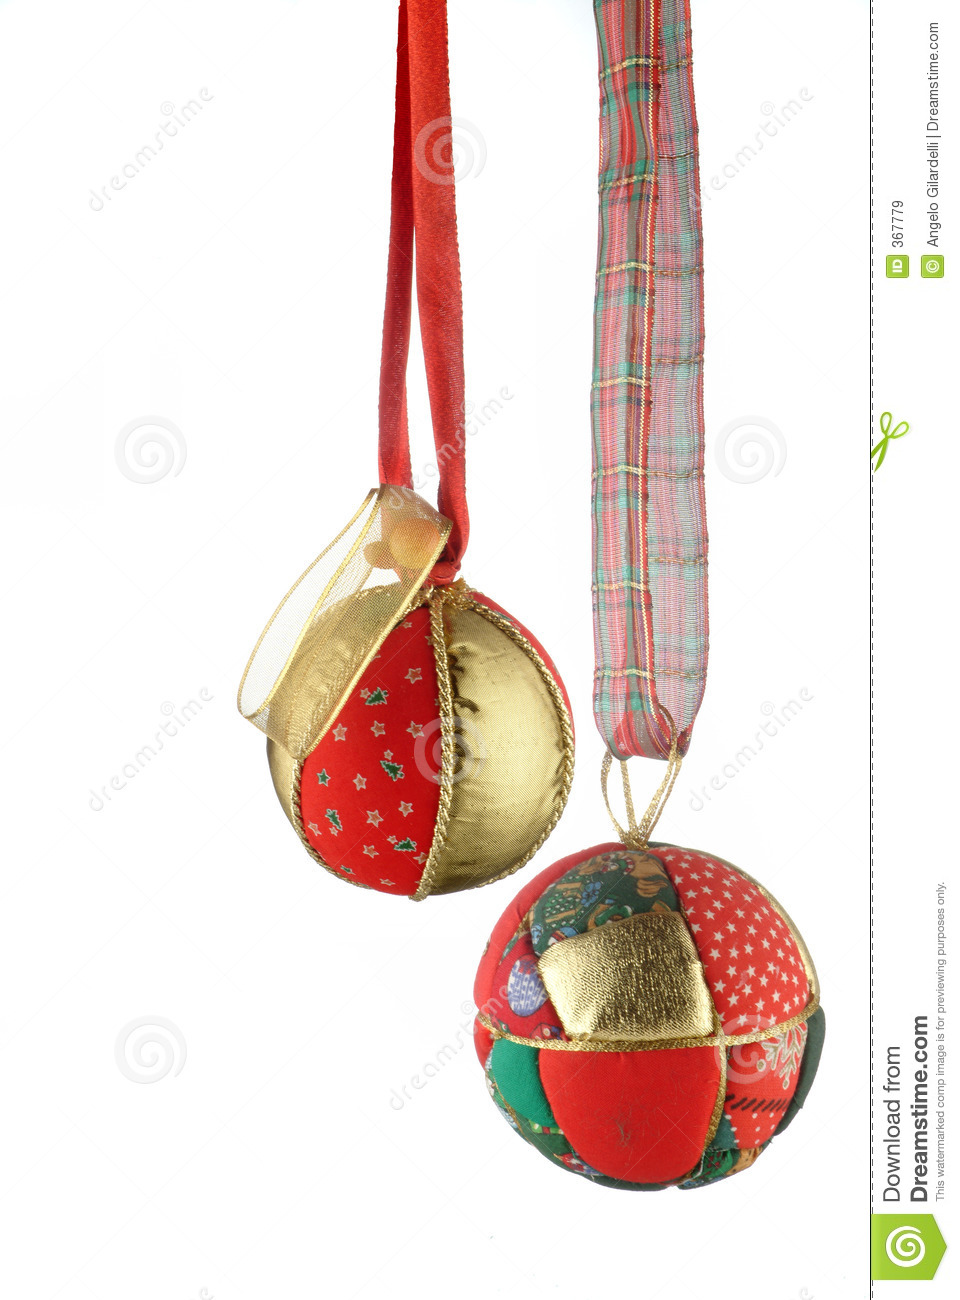 Christmas balls vertical photo royalty free stock images